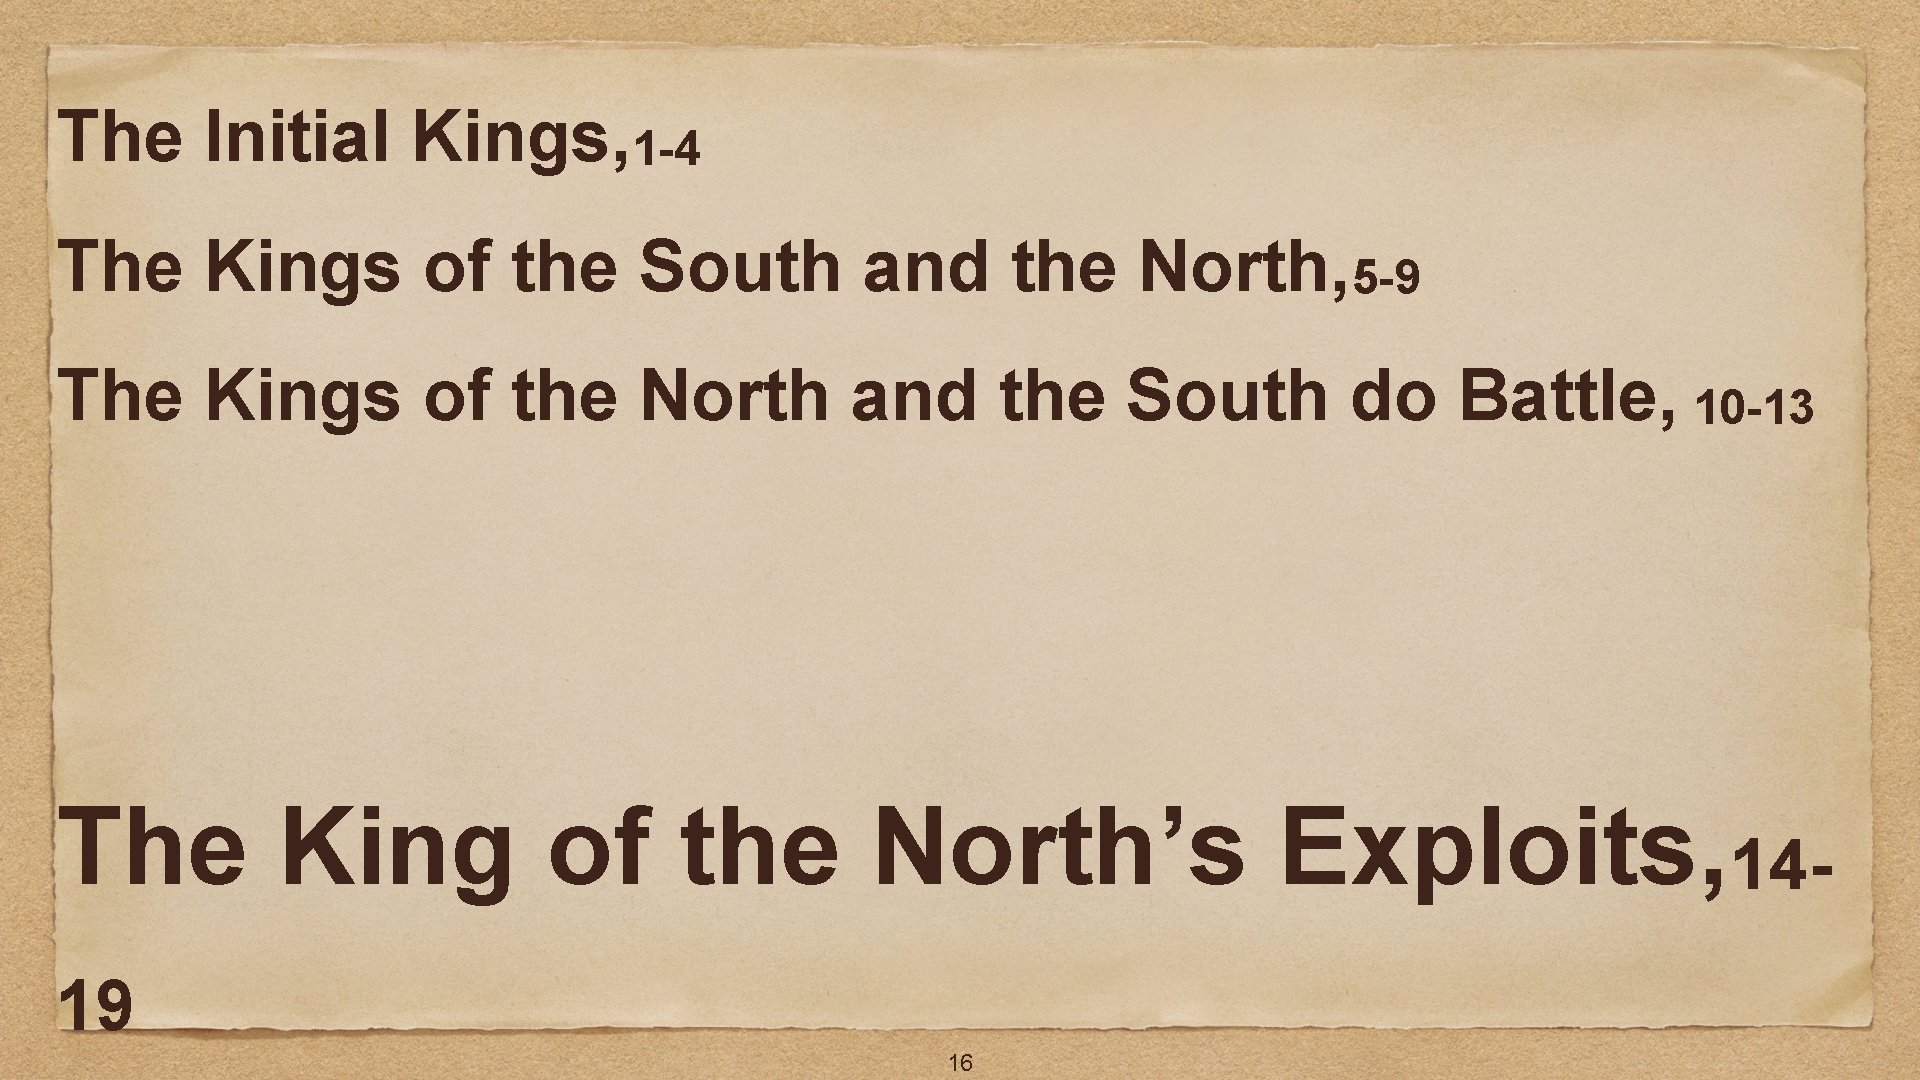 The Initial Kings, 1 -4 The Kings of the South and the North, 5